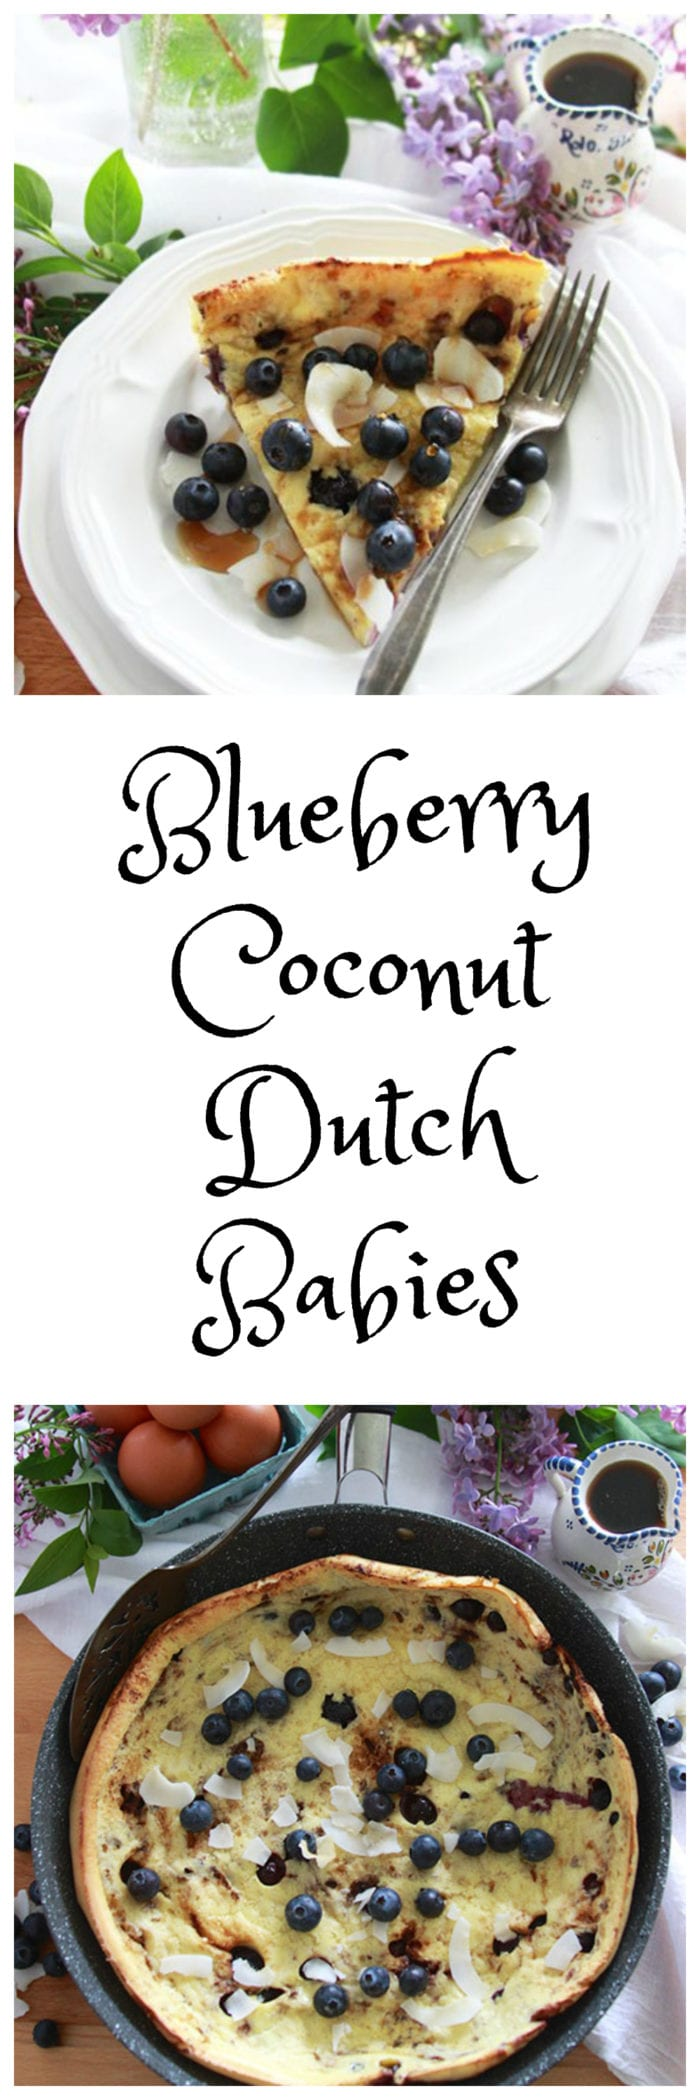 Blueberry Coconut Dutch Babies are the perfect way to start your weekend! www.cookingwithruthie.com